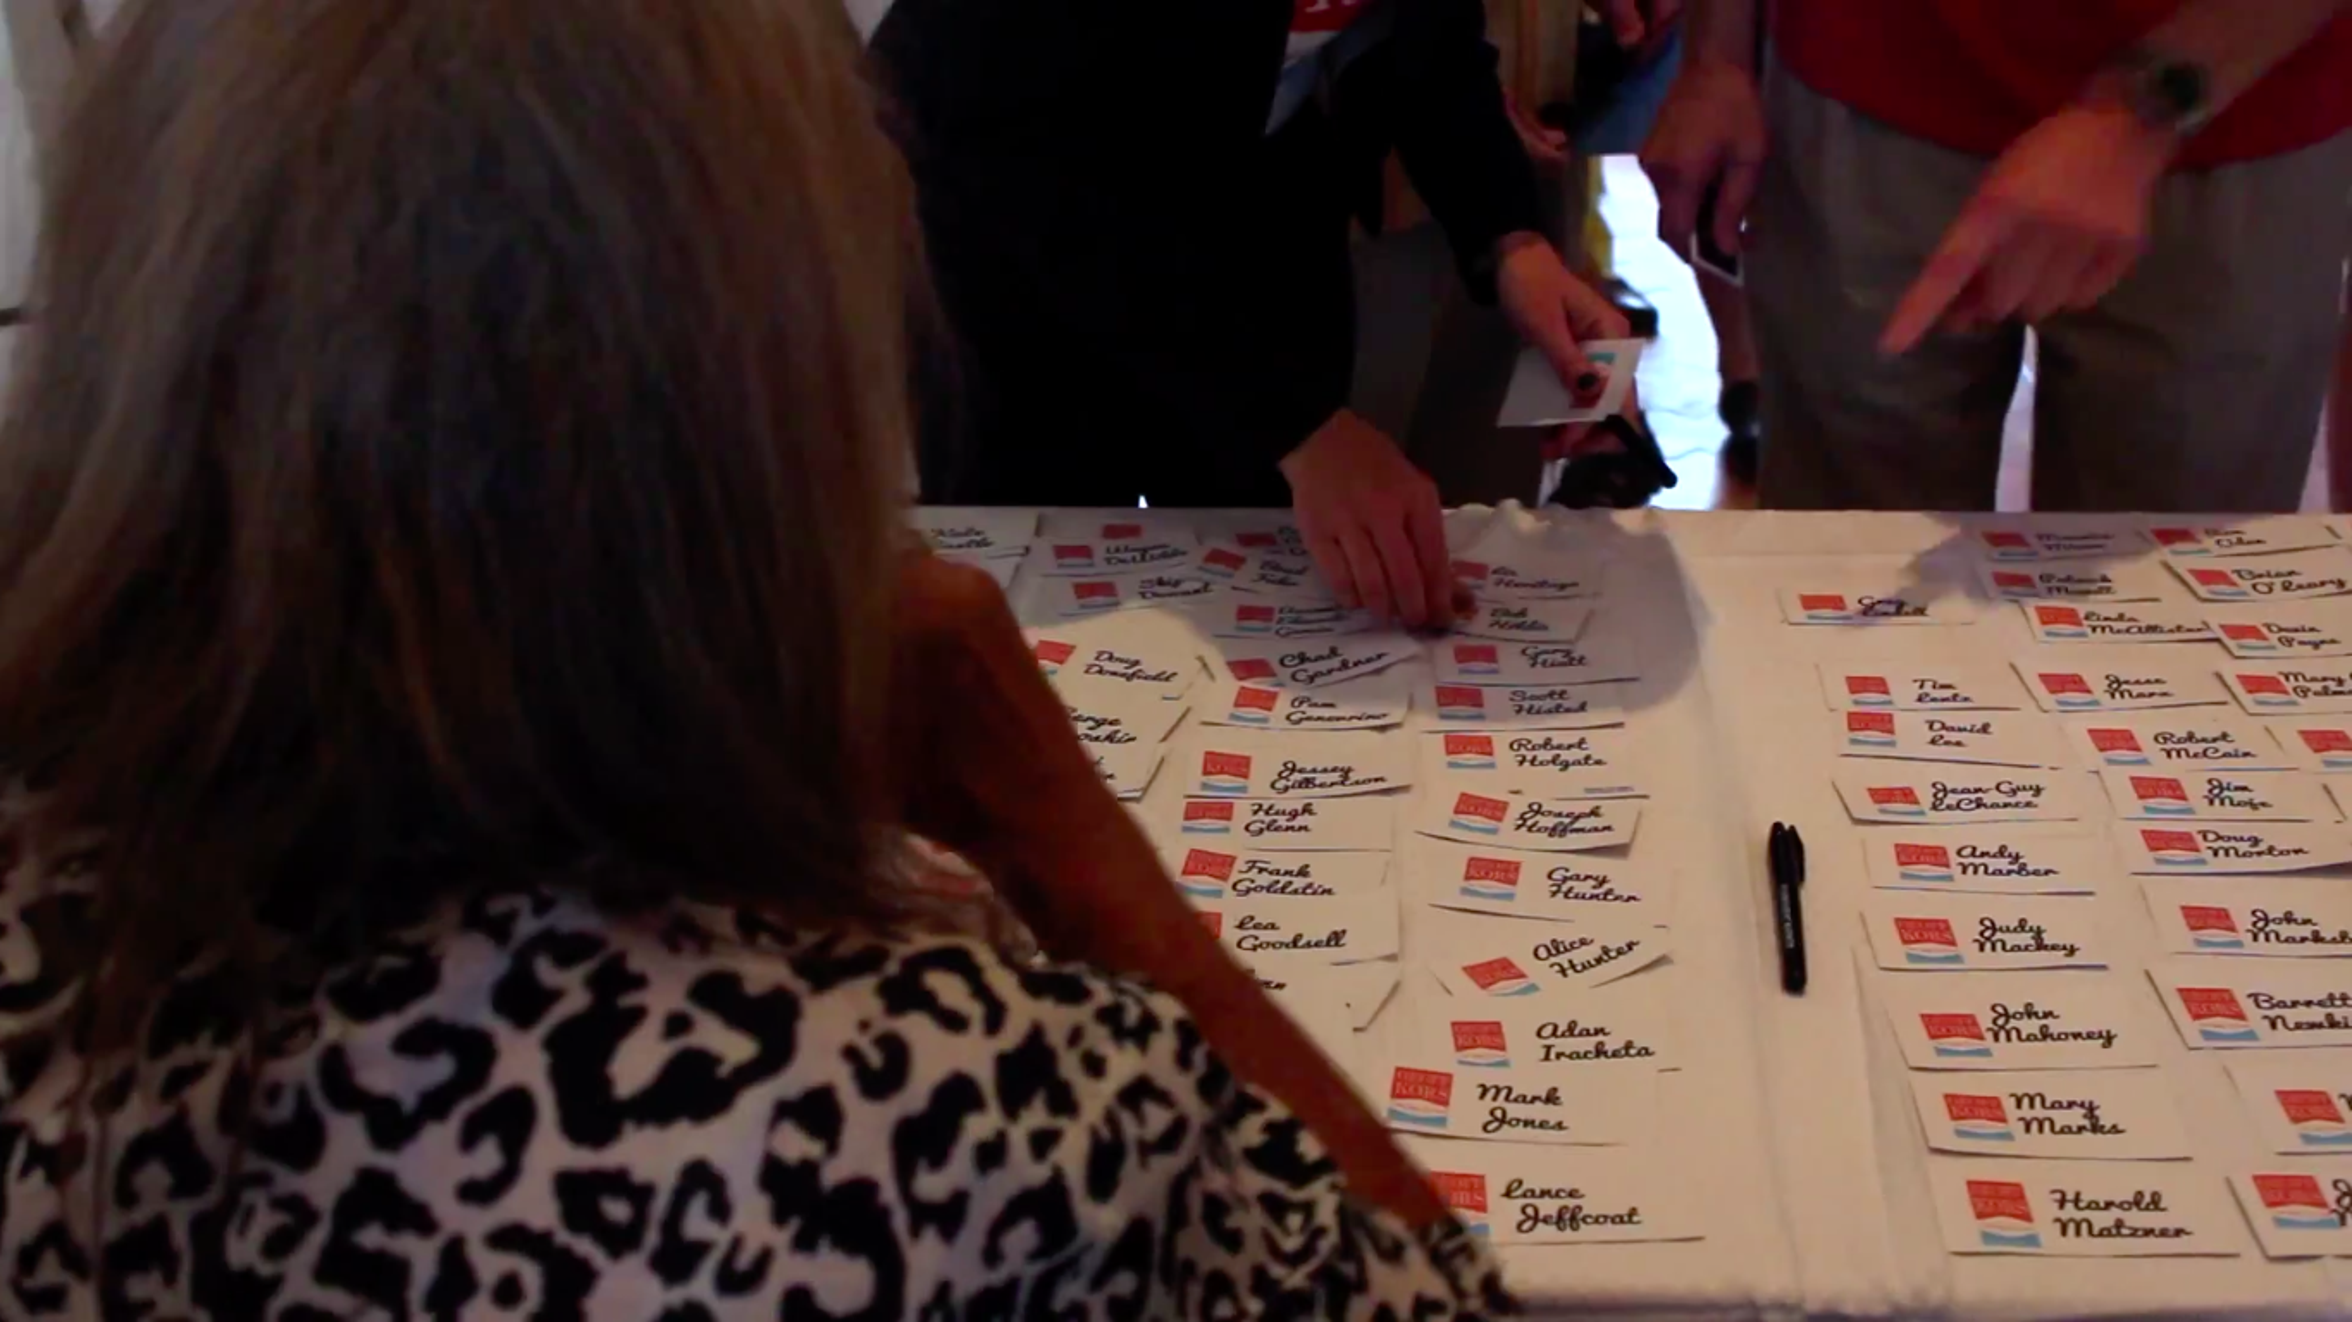 Sign-In Table at the home of Geoff Kors and James Williamson from Geoff Kors 2015 City Council Campaign Video